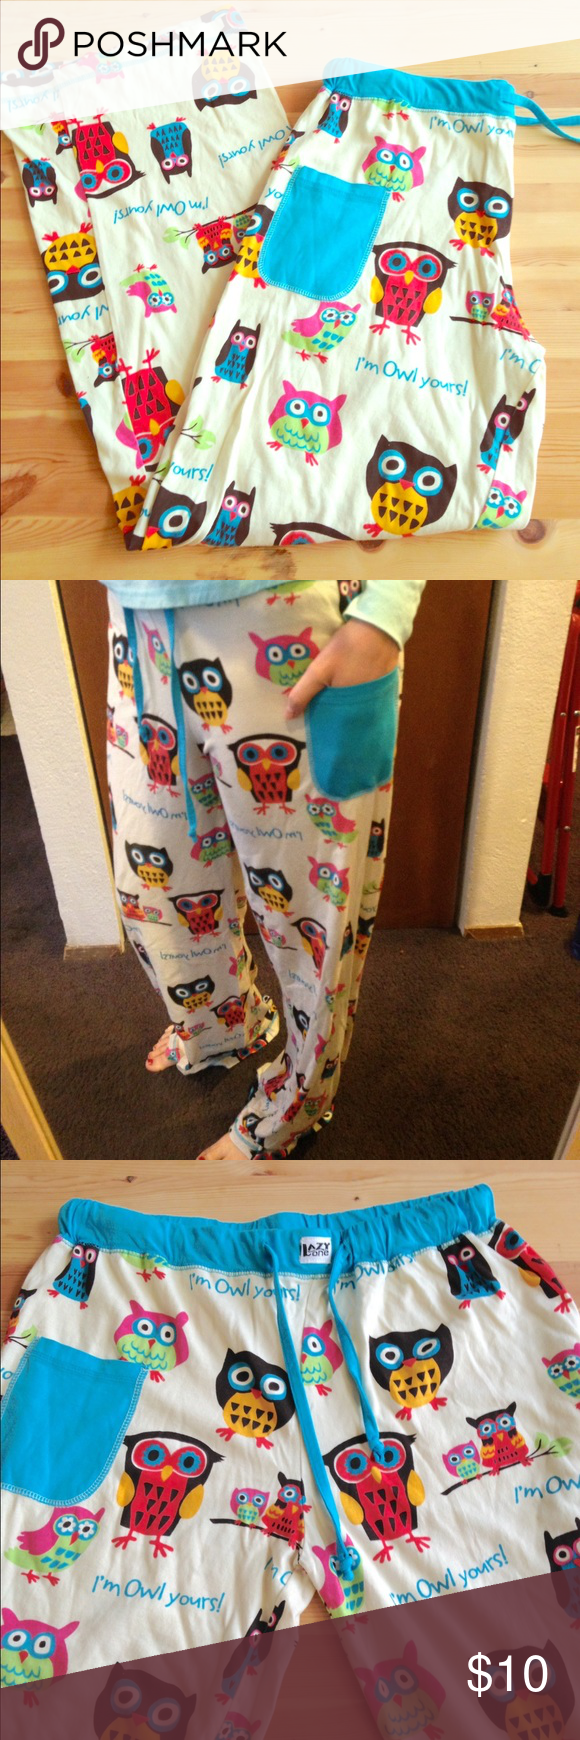 """💕Owl PJ pants😴 """"I'm owl yours!"""" Adorable owl PJ pants ☺️ very roomy fit with a drawstring. 100% cotton gently used. Size M/L. I'm 5'6"""" and they are a couple inches too long. Lazy One Pants"""